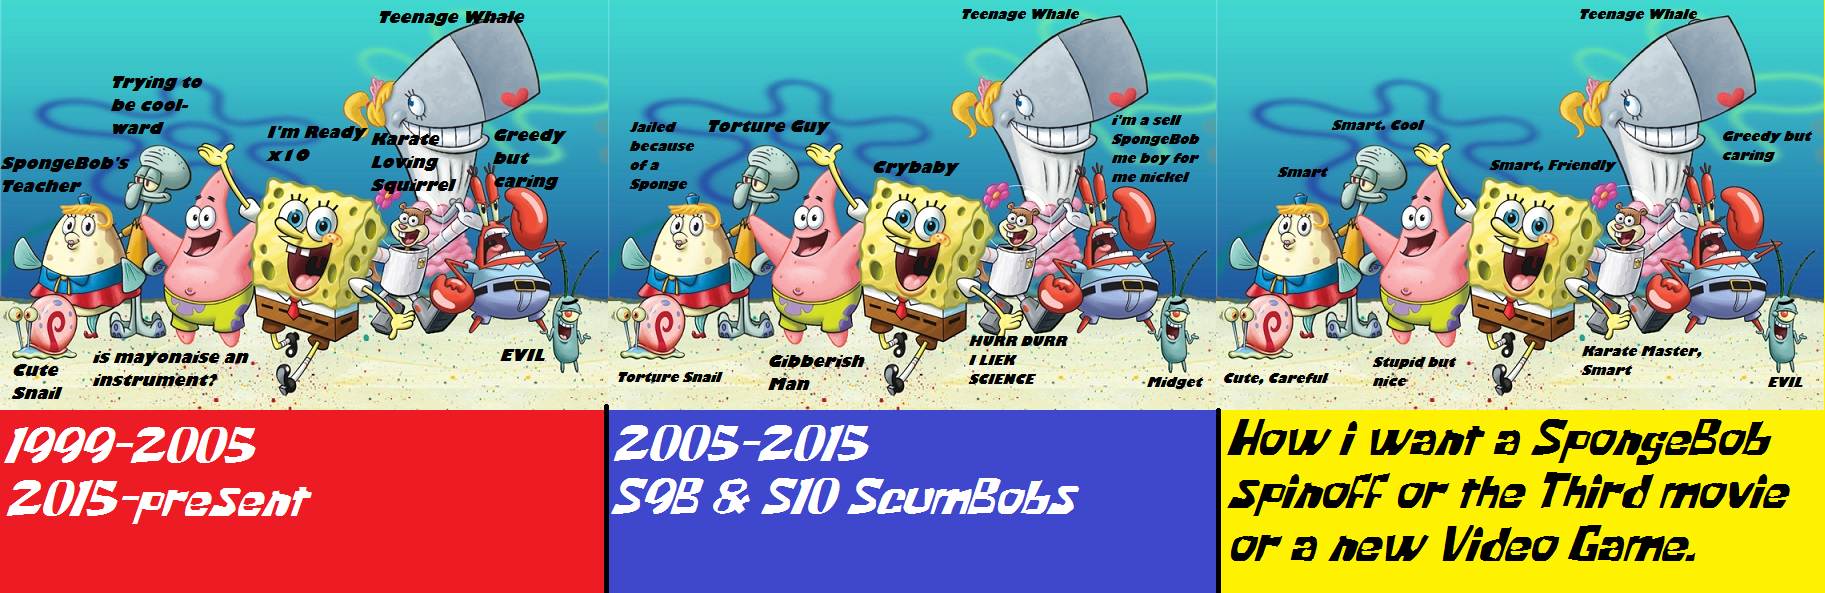 then and now spongebob iipng - Spongbob 2